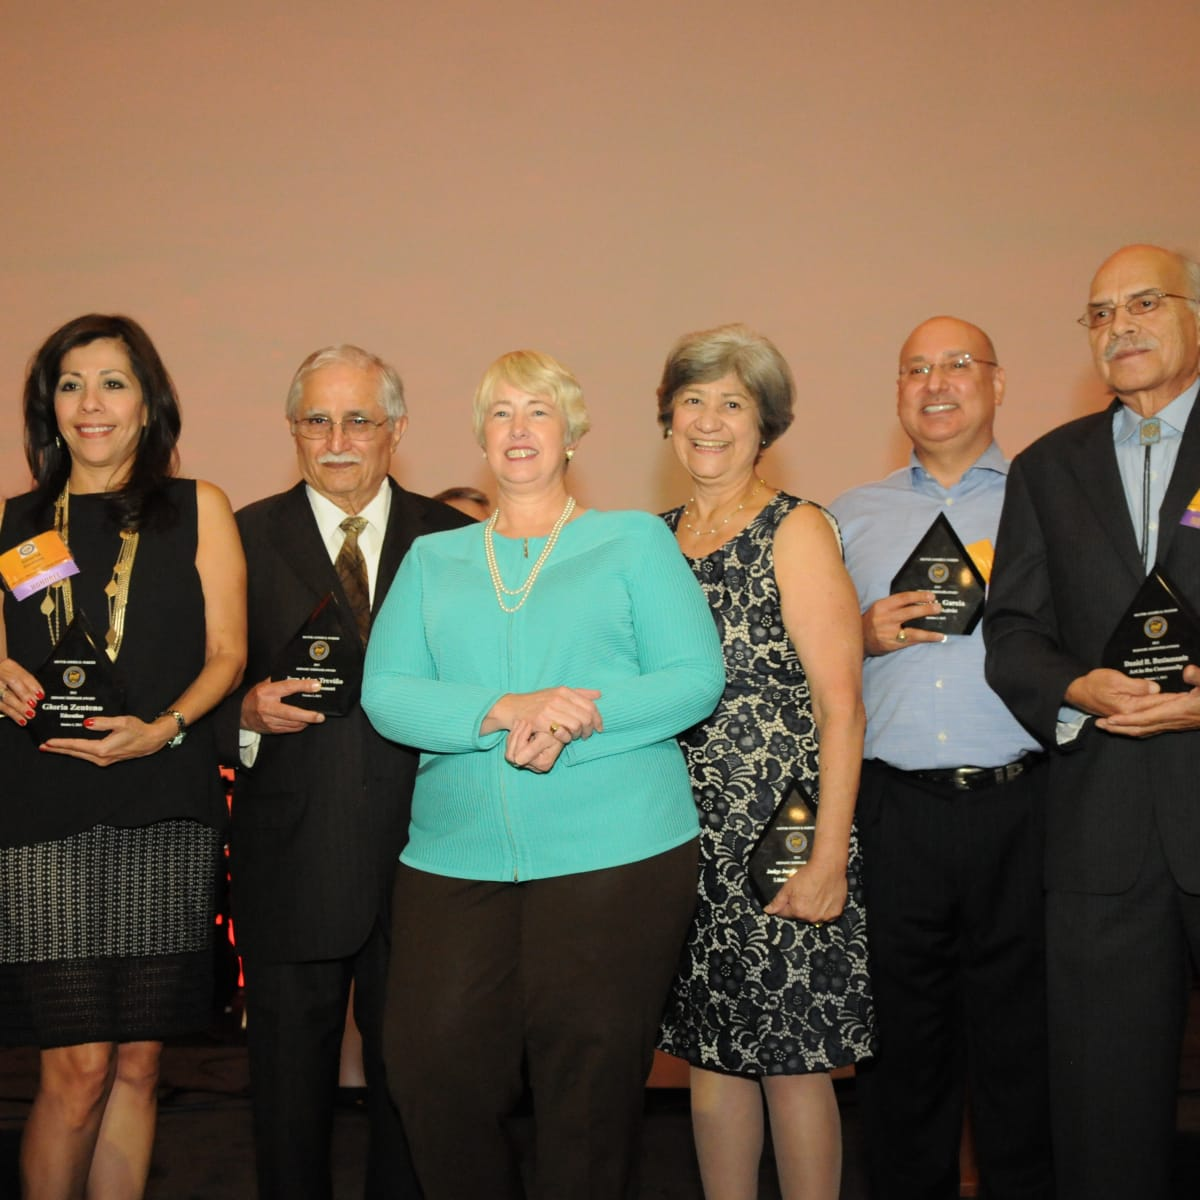 News, Shelby, Mayor's Hispanic Heritage Awards, Oct. 2015, James Lee, Gloria Zenteno, Jose Adan Trevino, Mayor Annise Parker,  Josefina Rendon, Gilbert Garcia, Daniel Bustamante